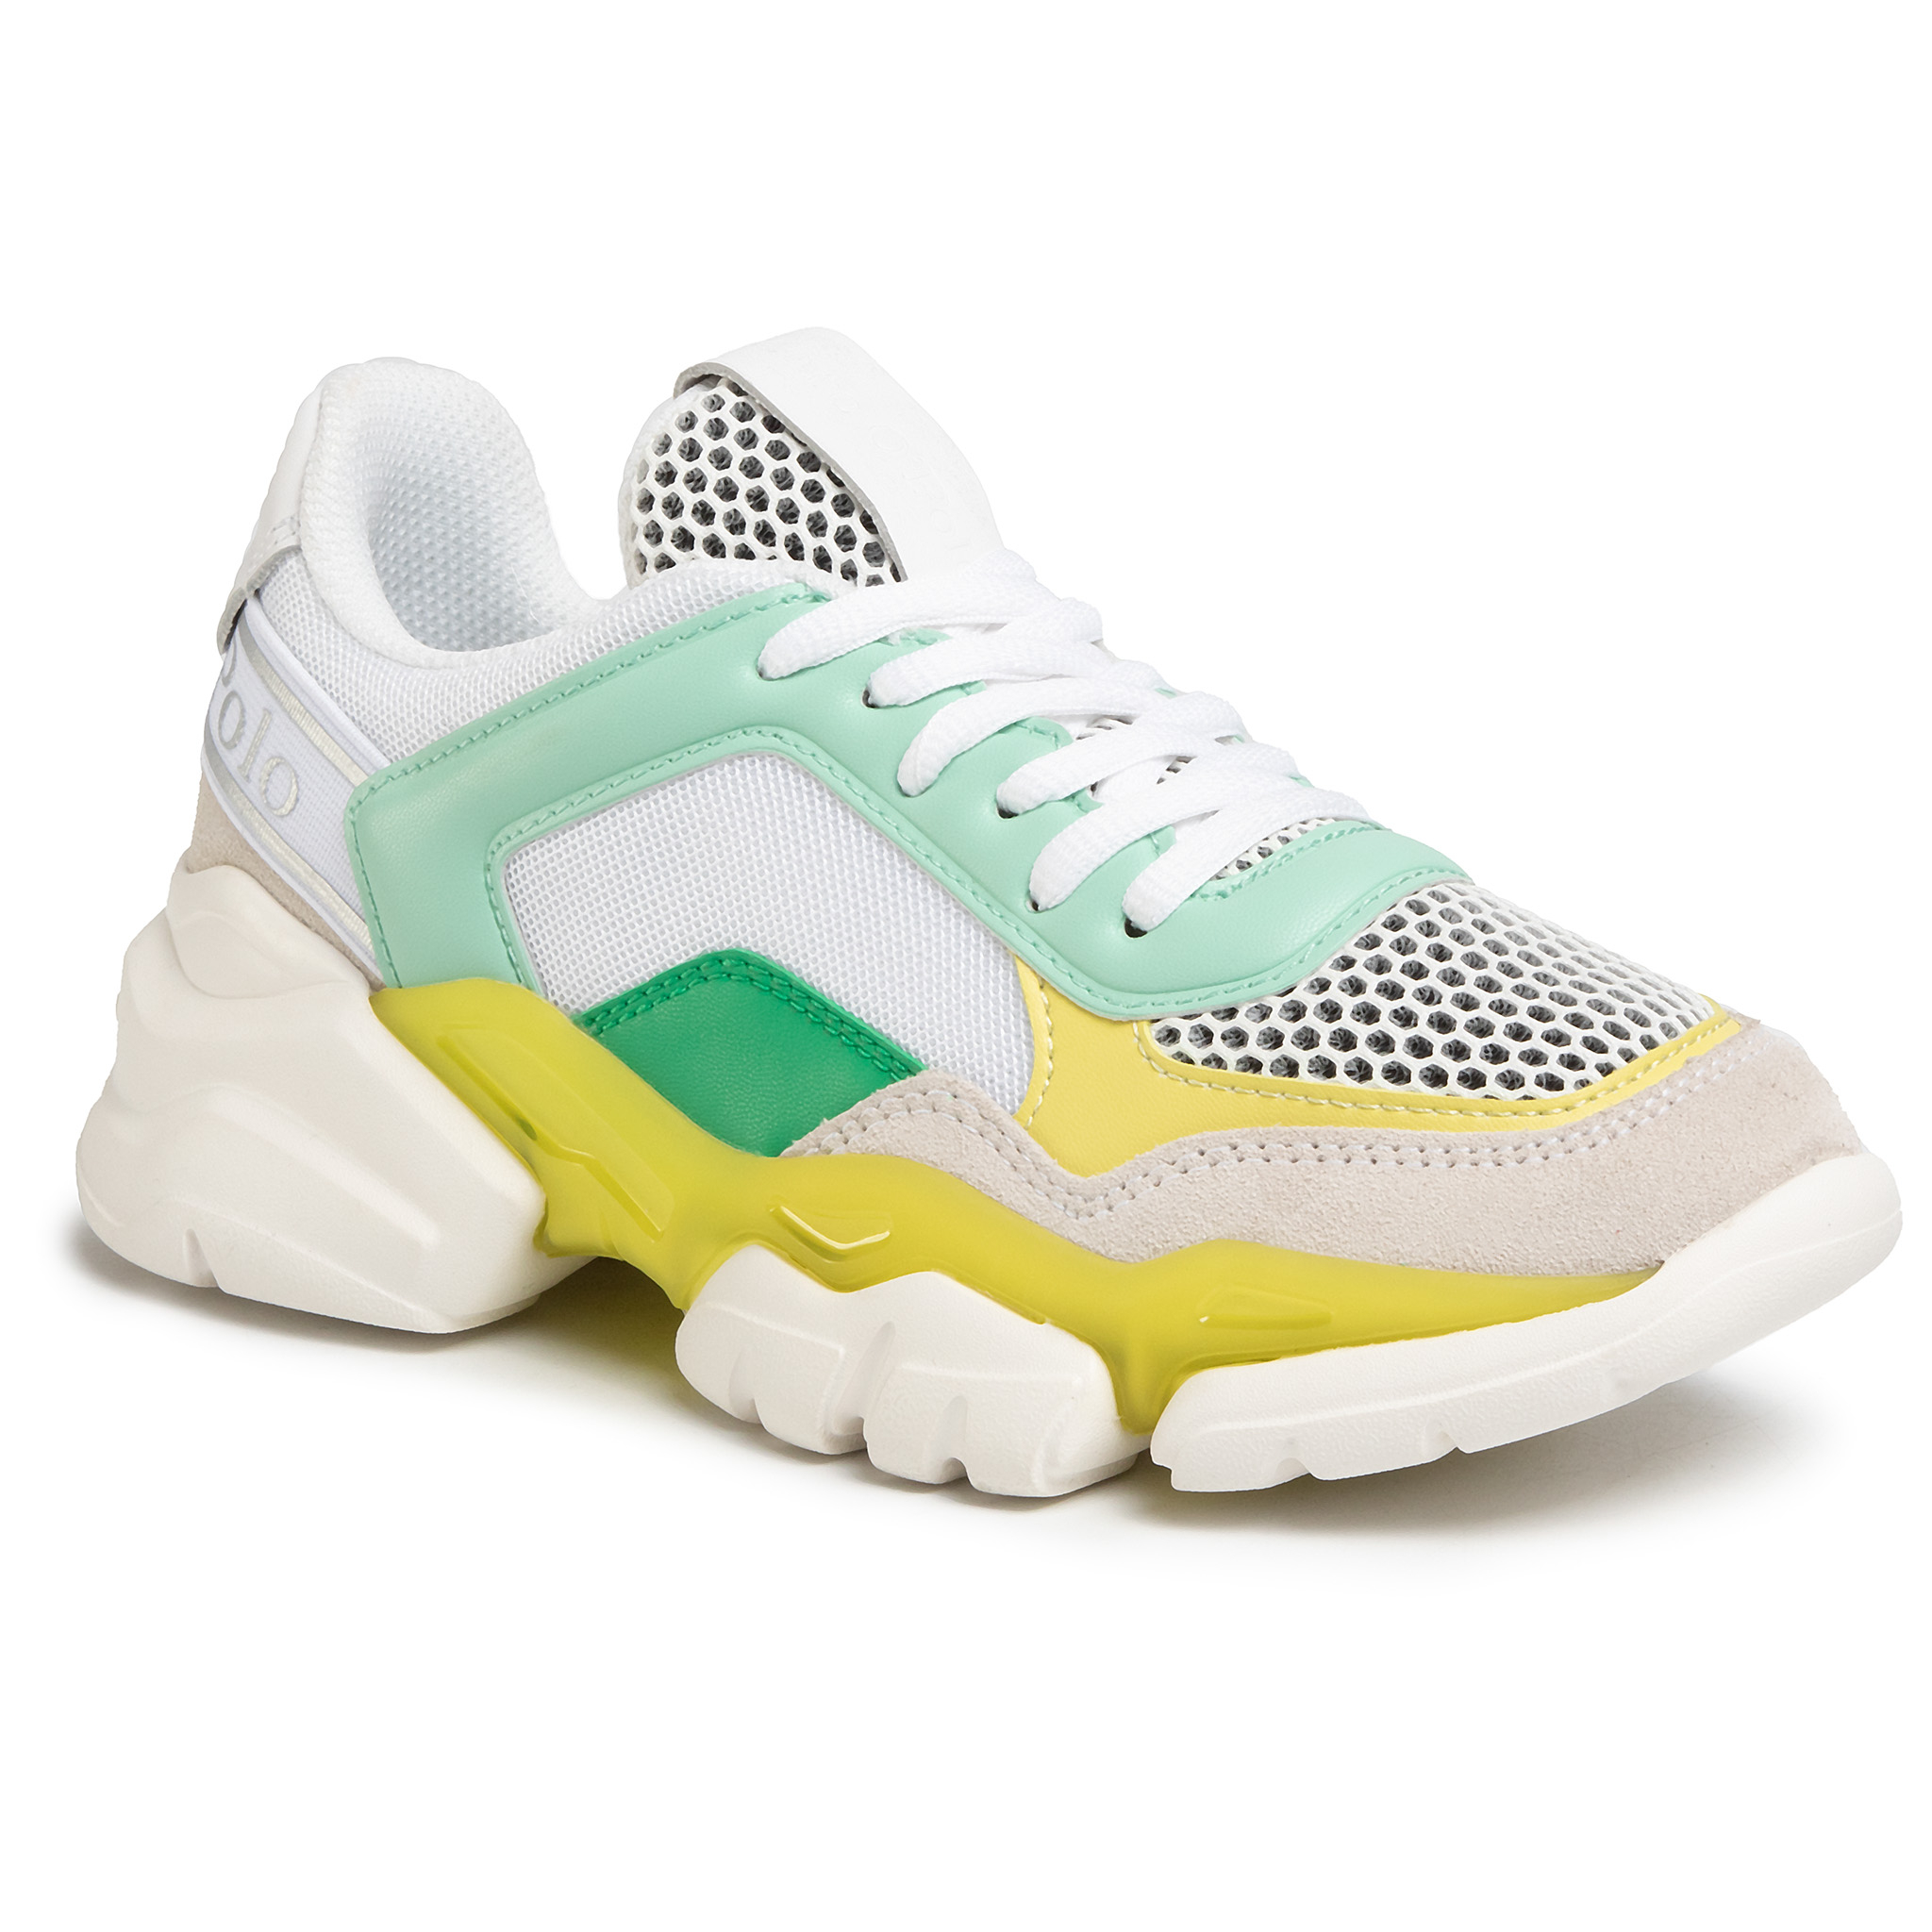 Sneakers MARC O'POLO - 001 15503501 610  Mint Combi 442